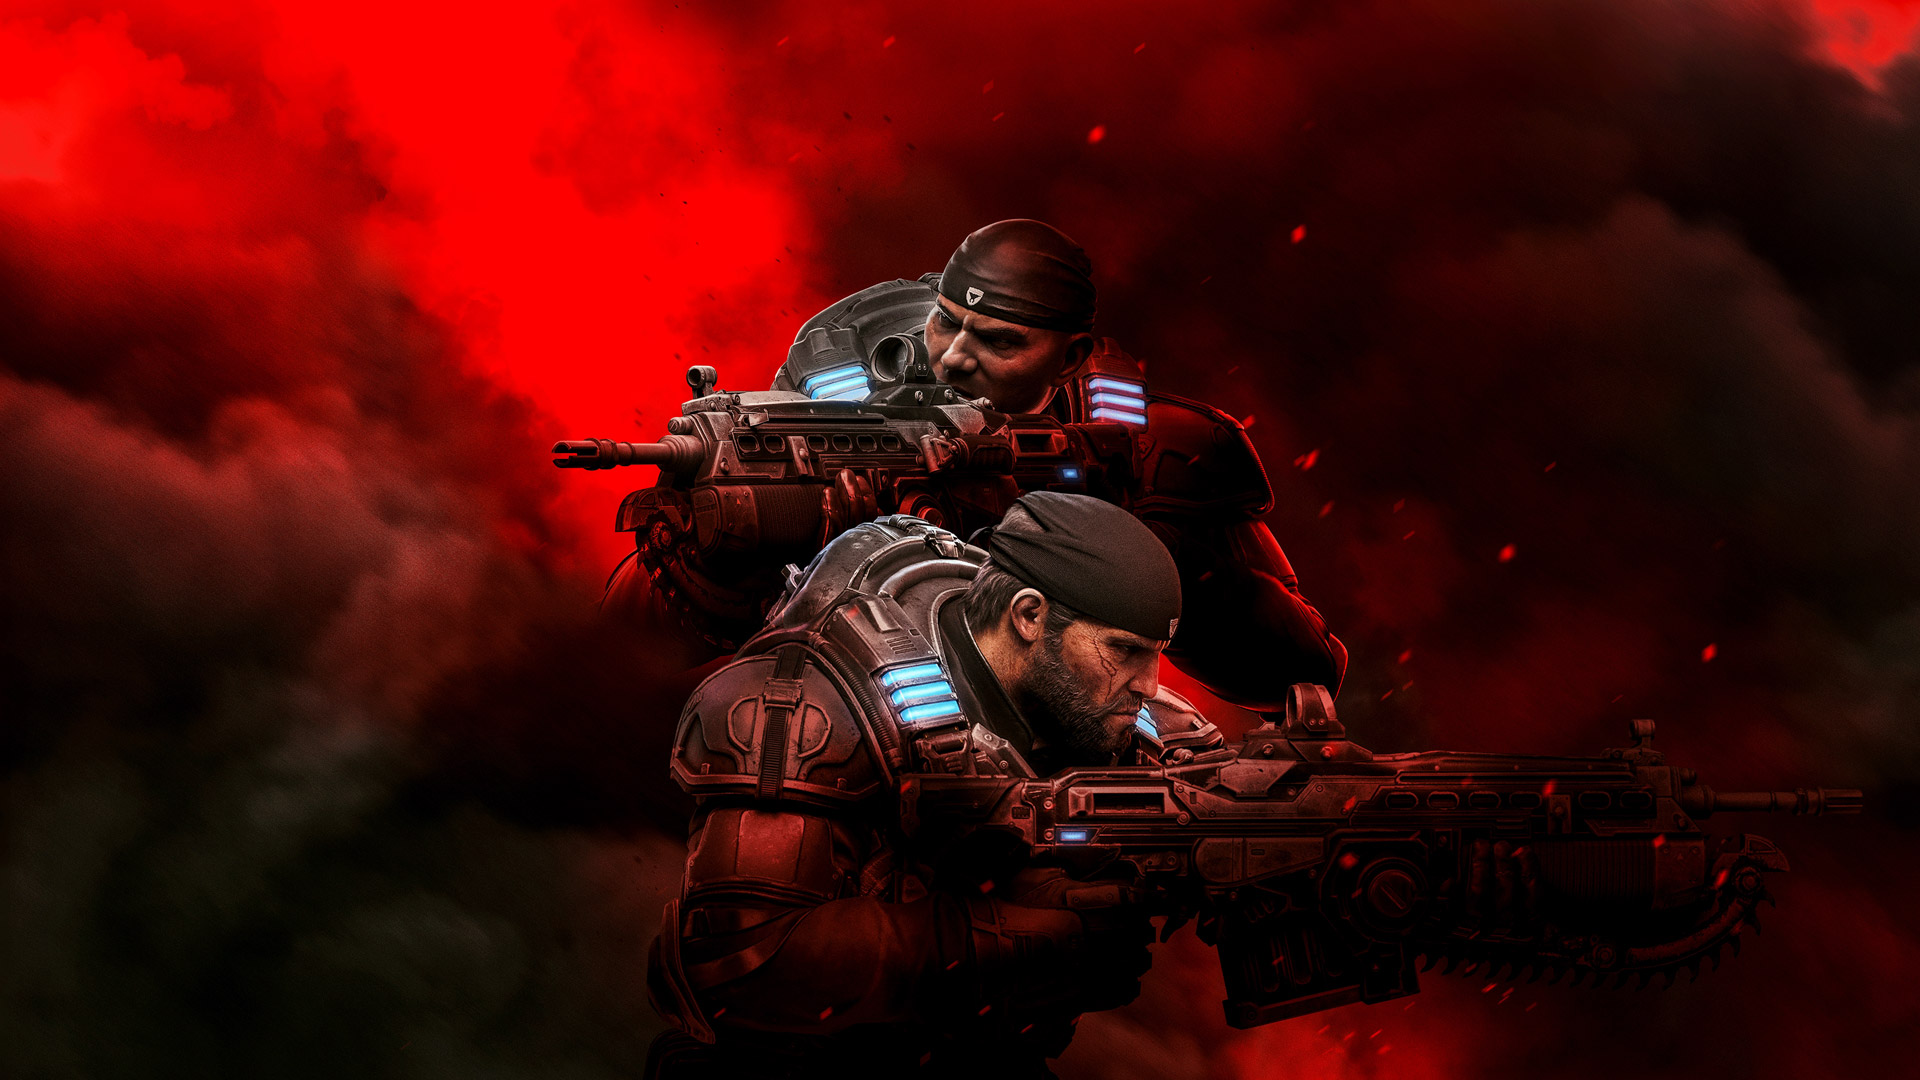 Gears 5 Wallpaper in 1920x1080